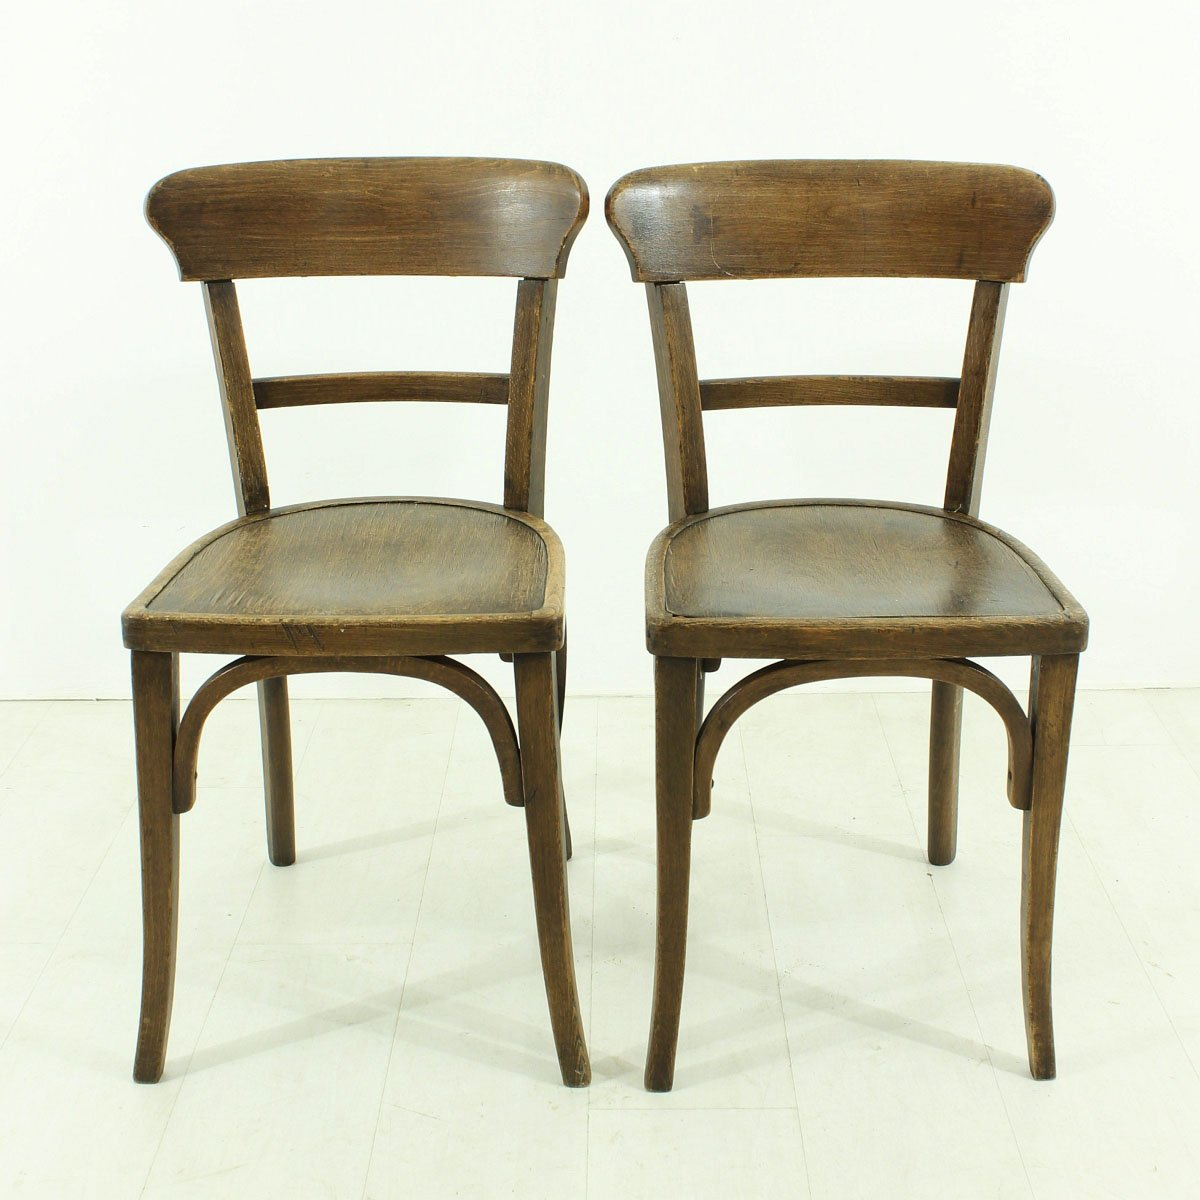 vintage dining chairs 1930s set of 2 for sale at pamono. Black Bedroom Furniture Sets. Home Design Ideas